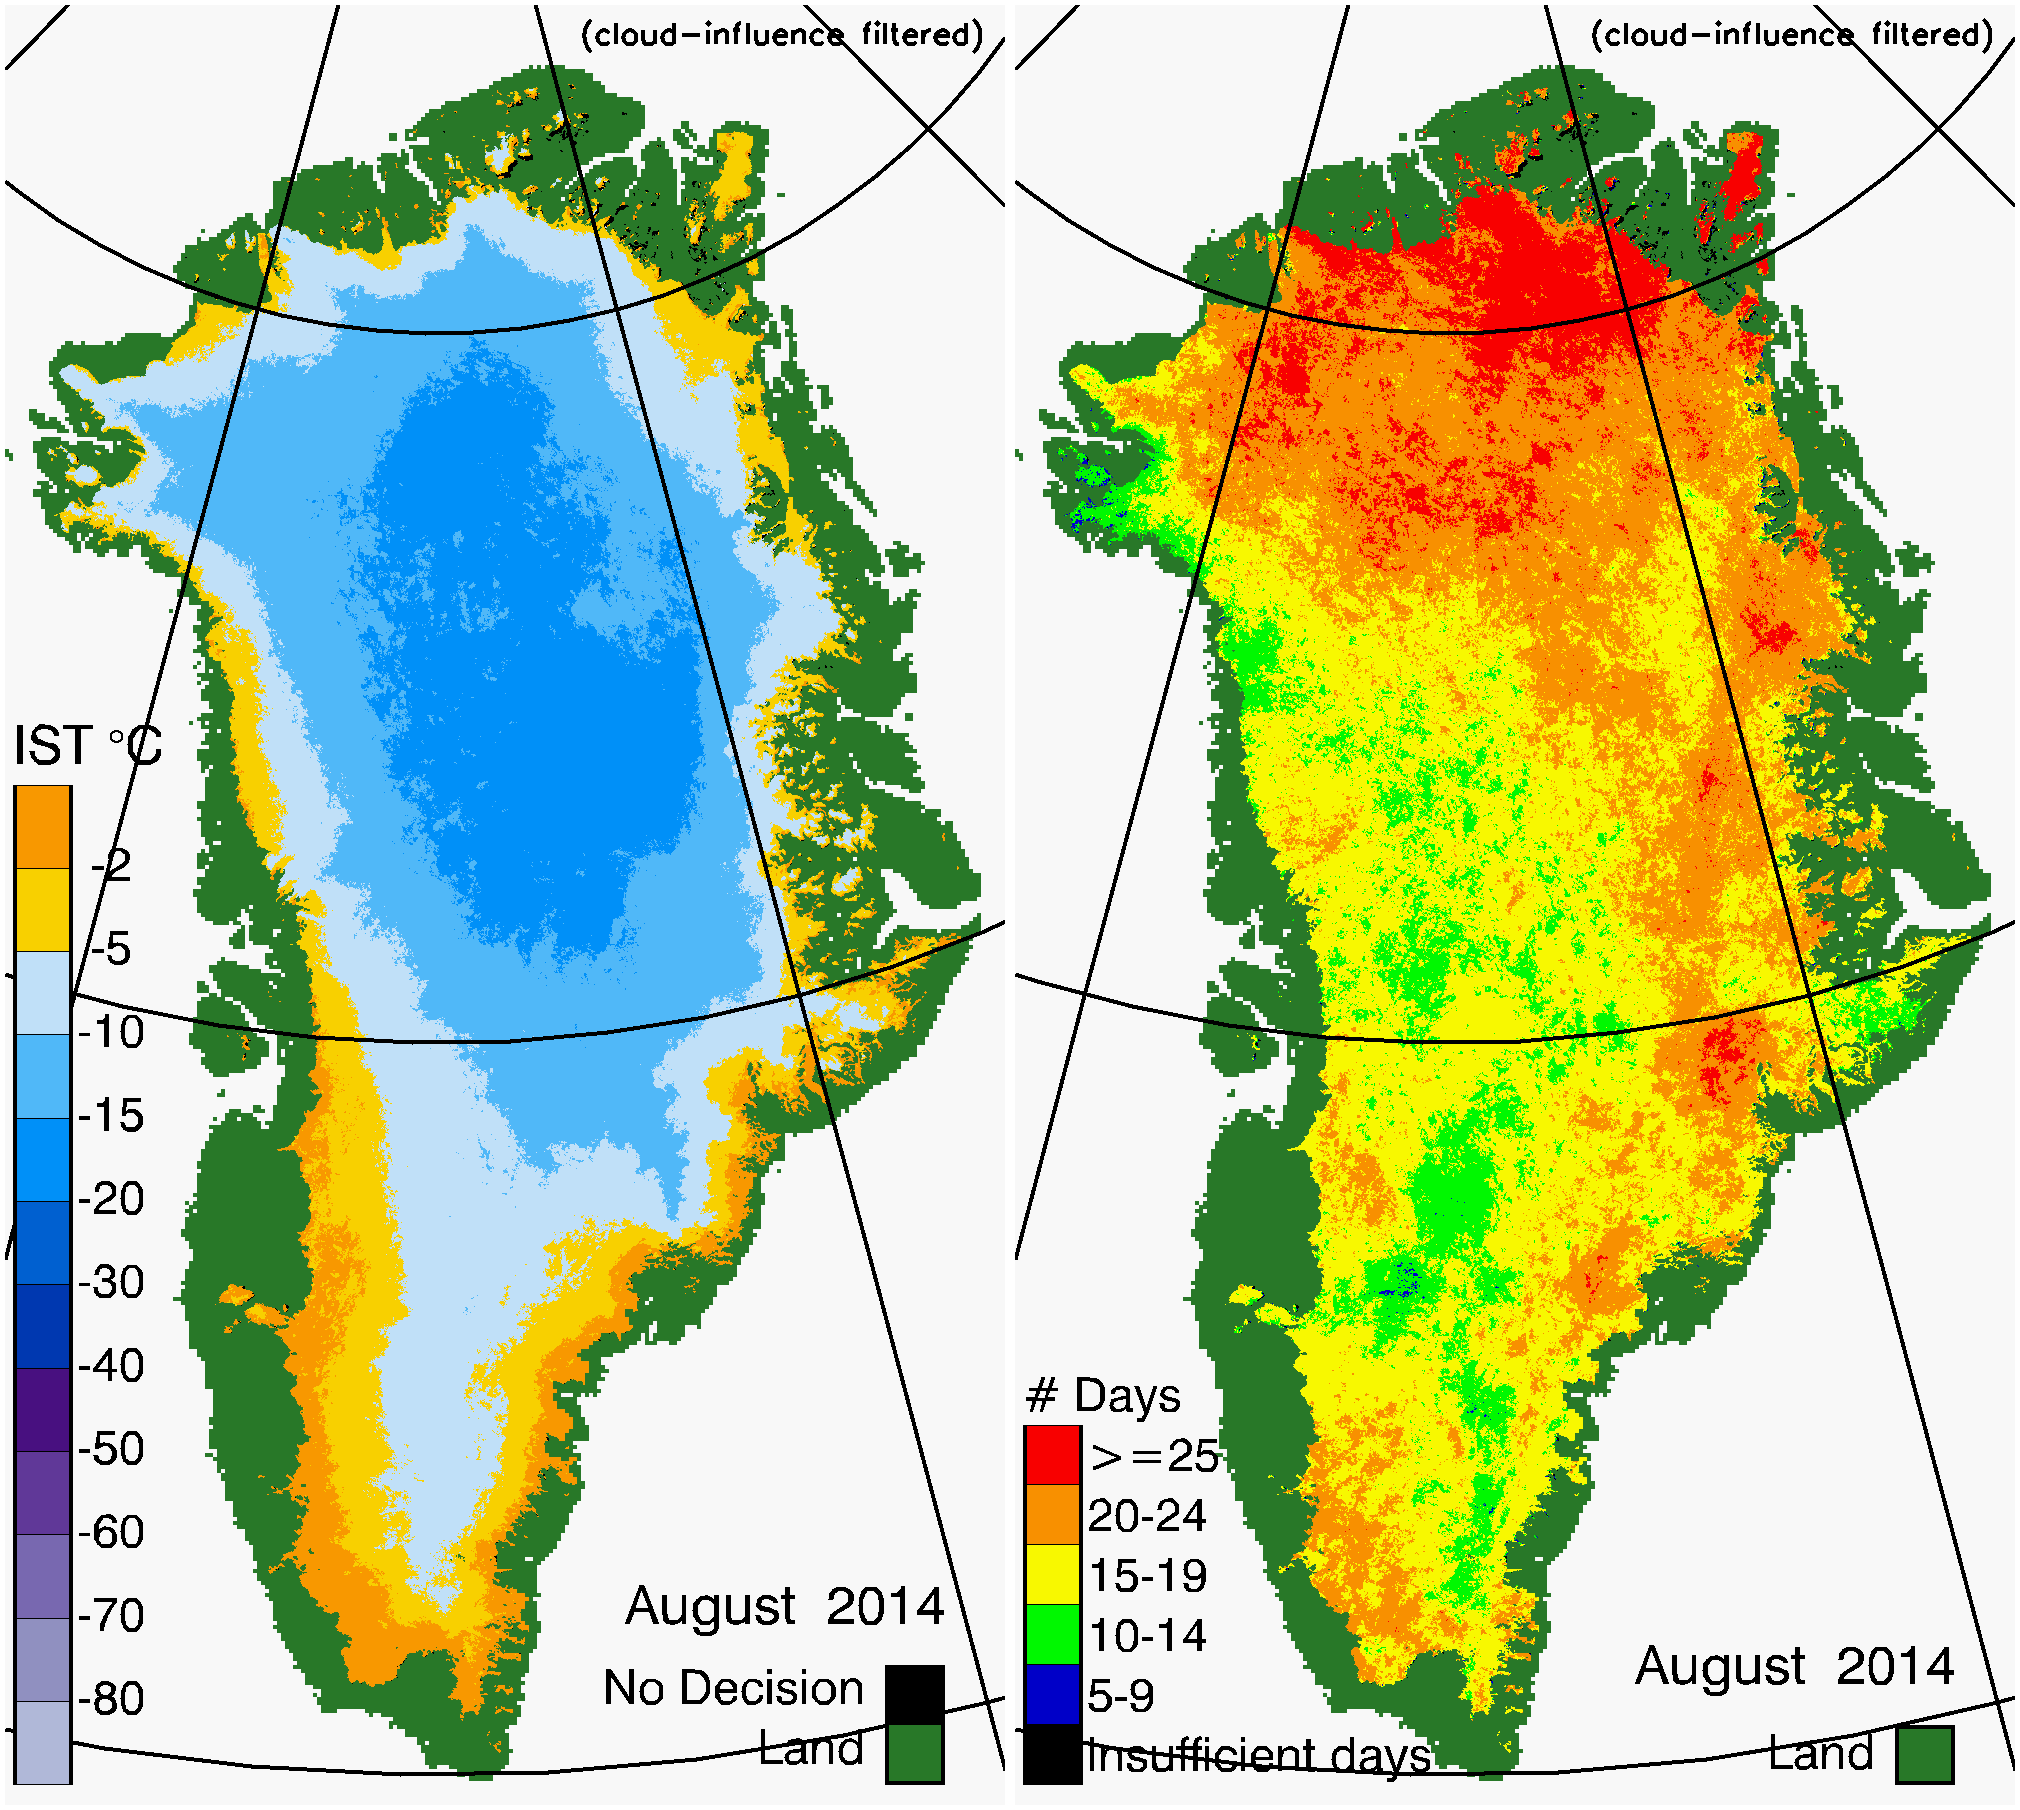 Greenland Surface Temp 08/2014